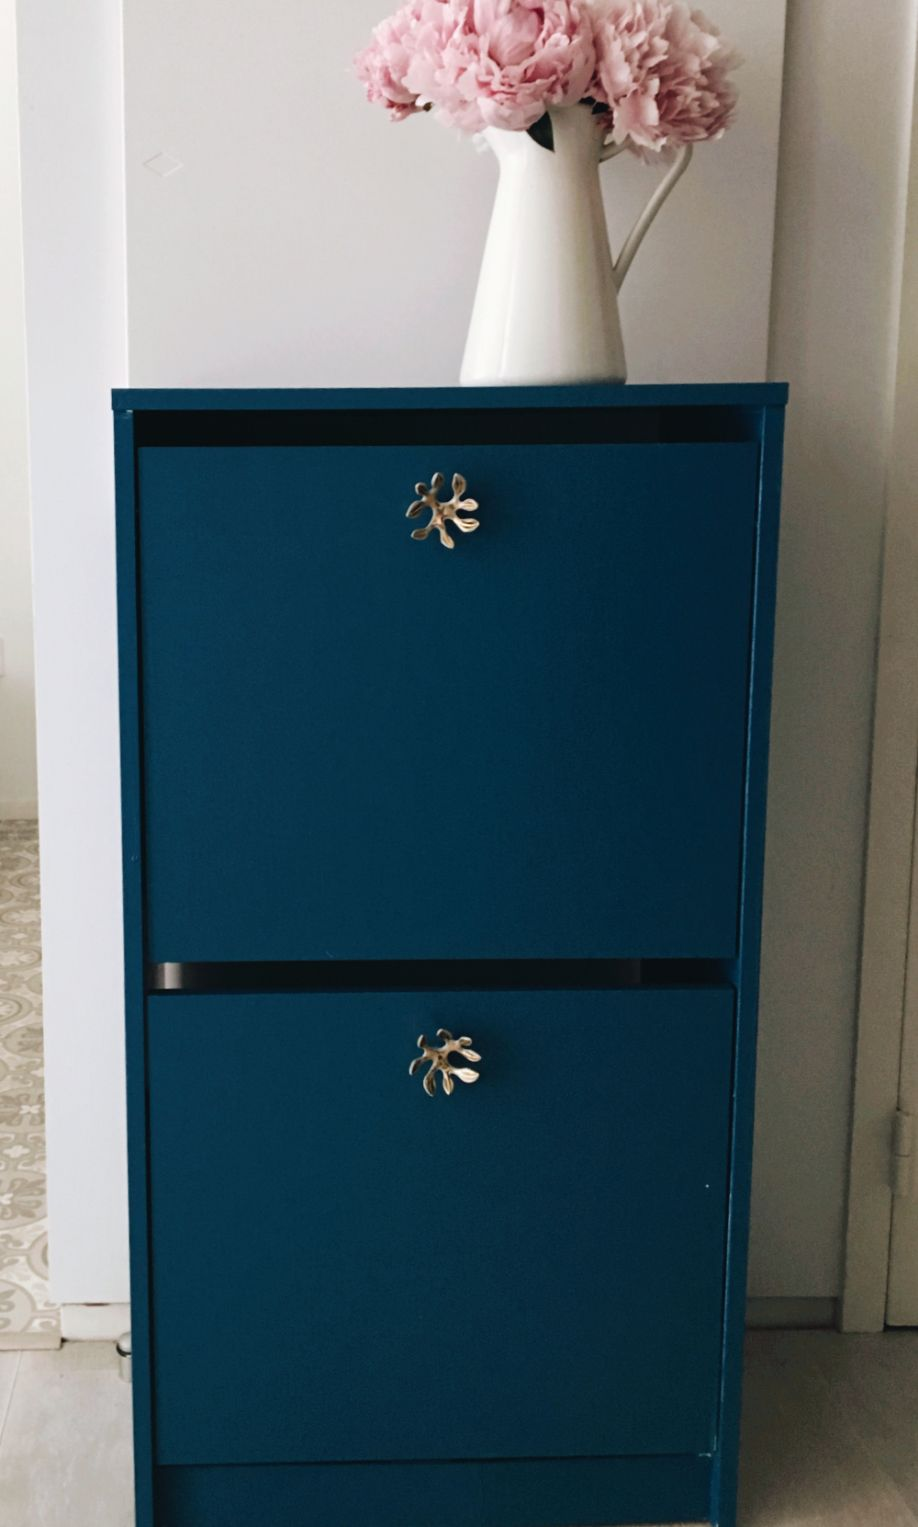 Hacking An Ikea Bissa For A Gorgeous Look Knot From Zara Home